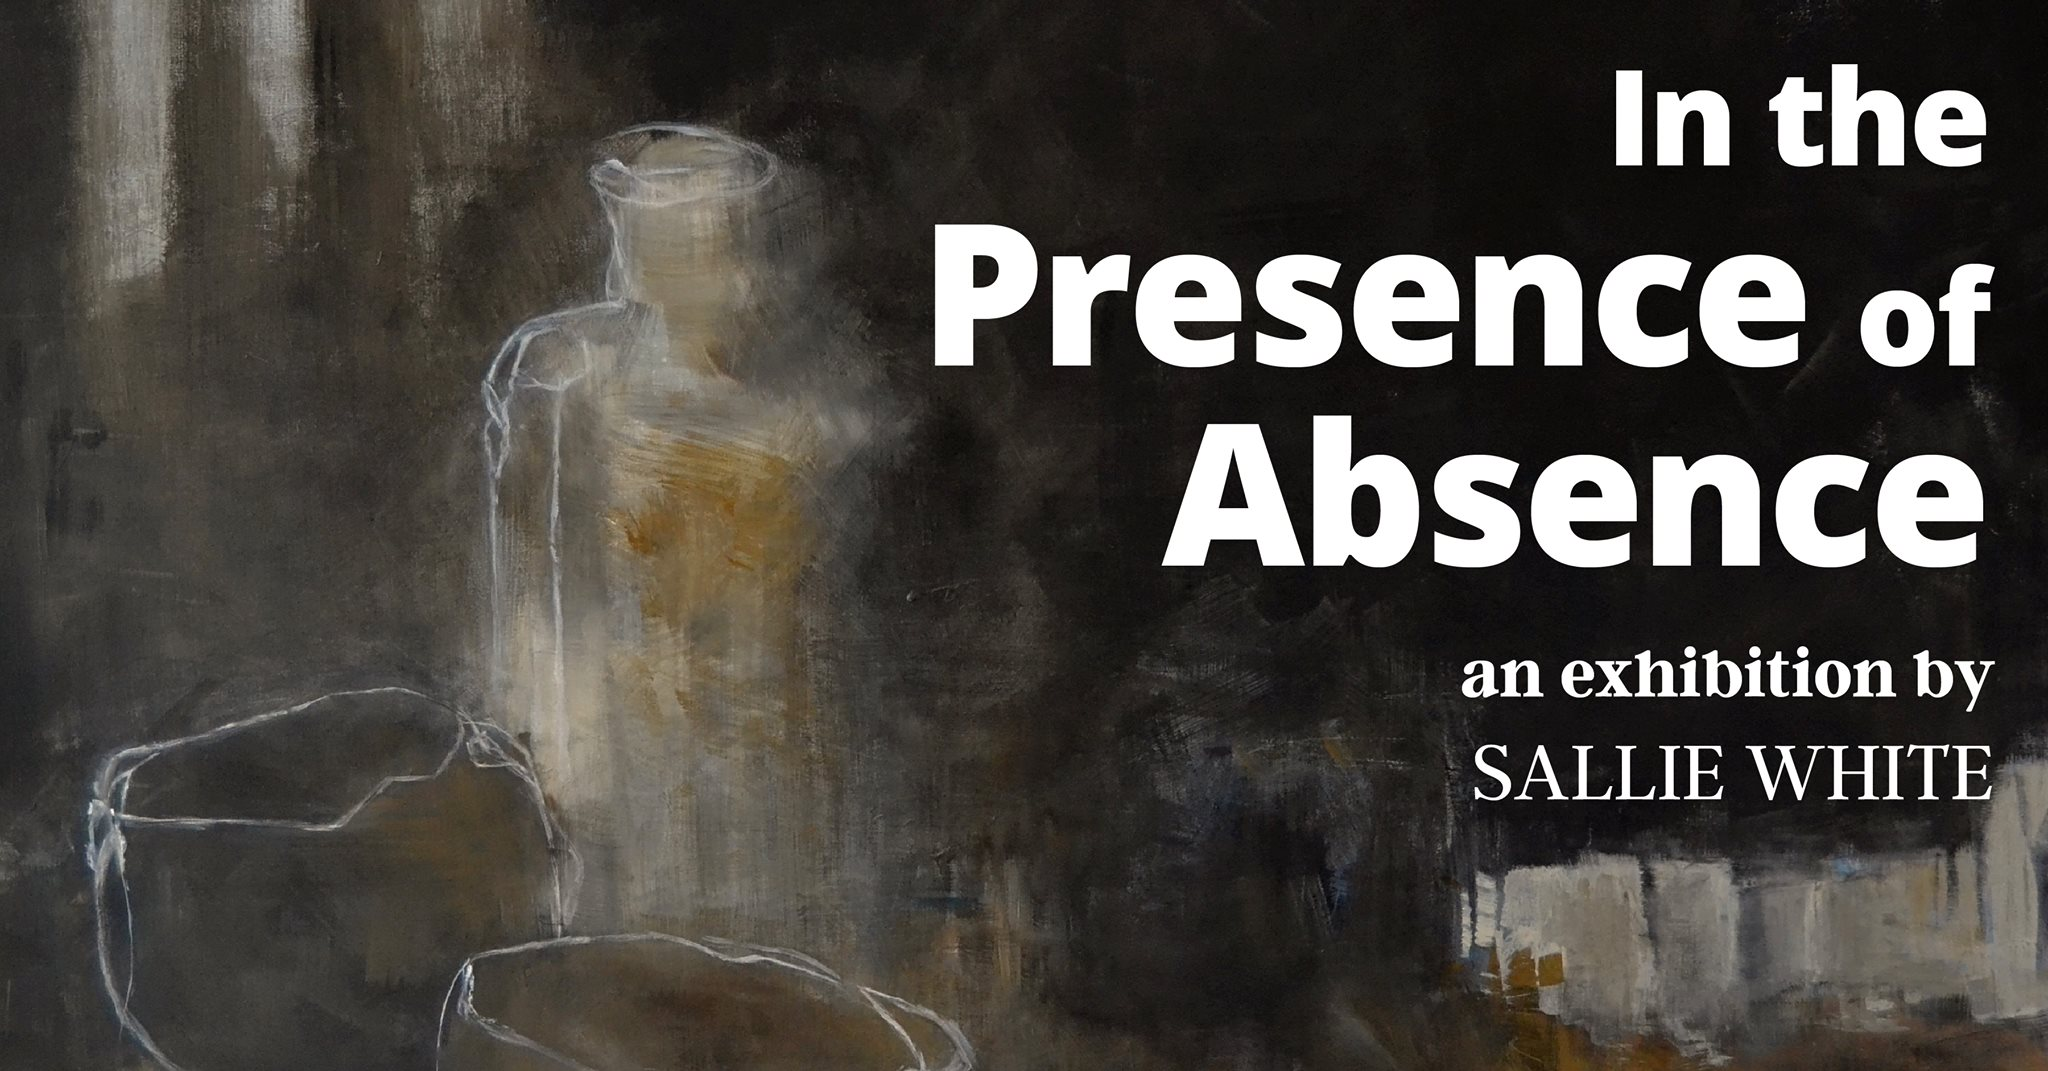 Sallie White, In the Presence of Absence